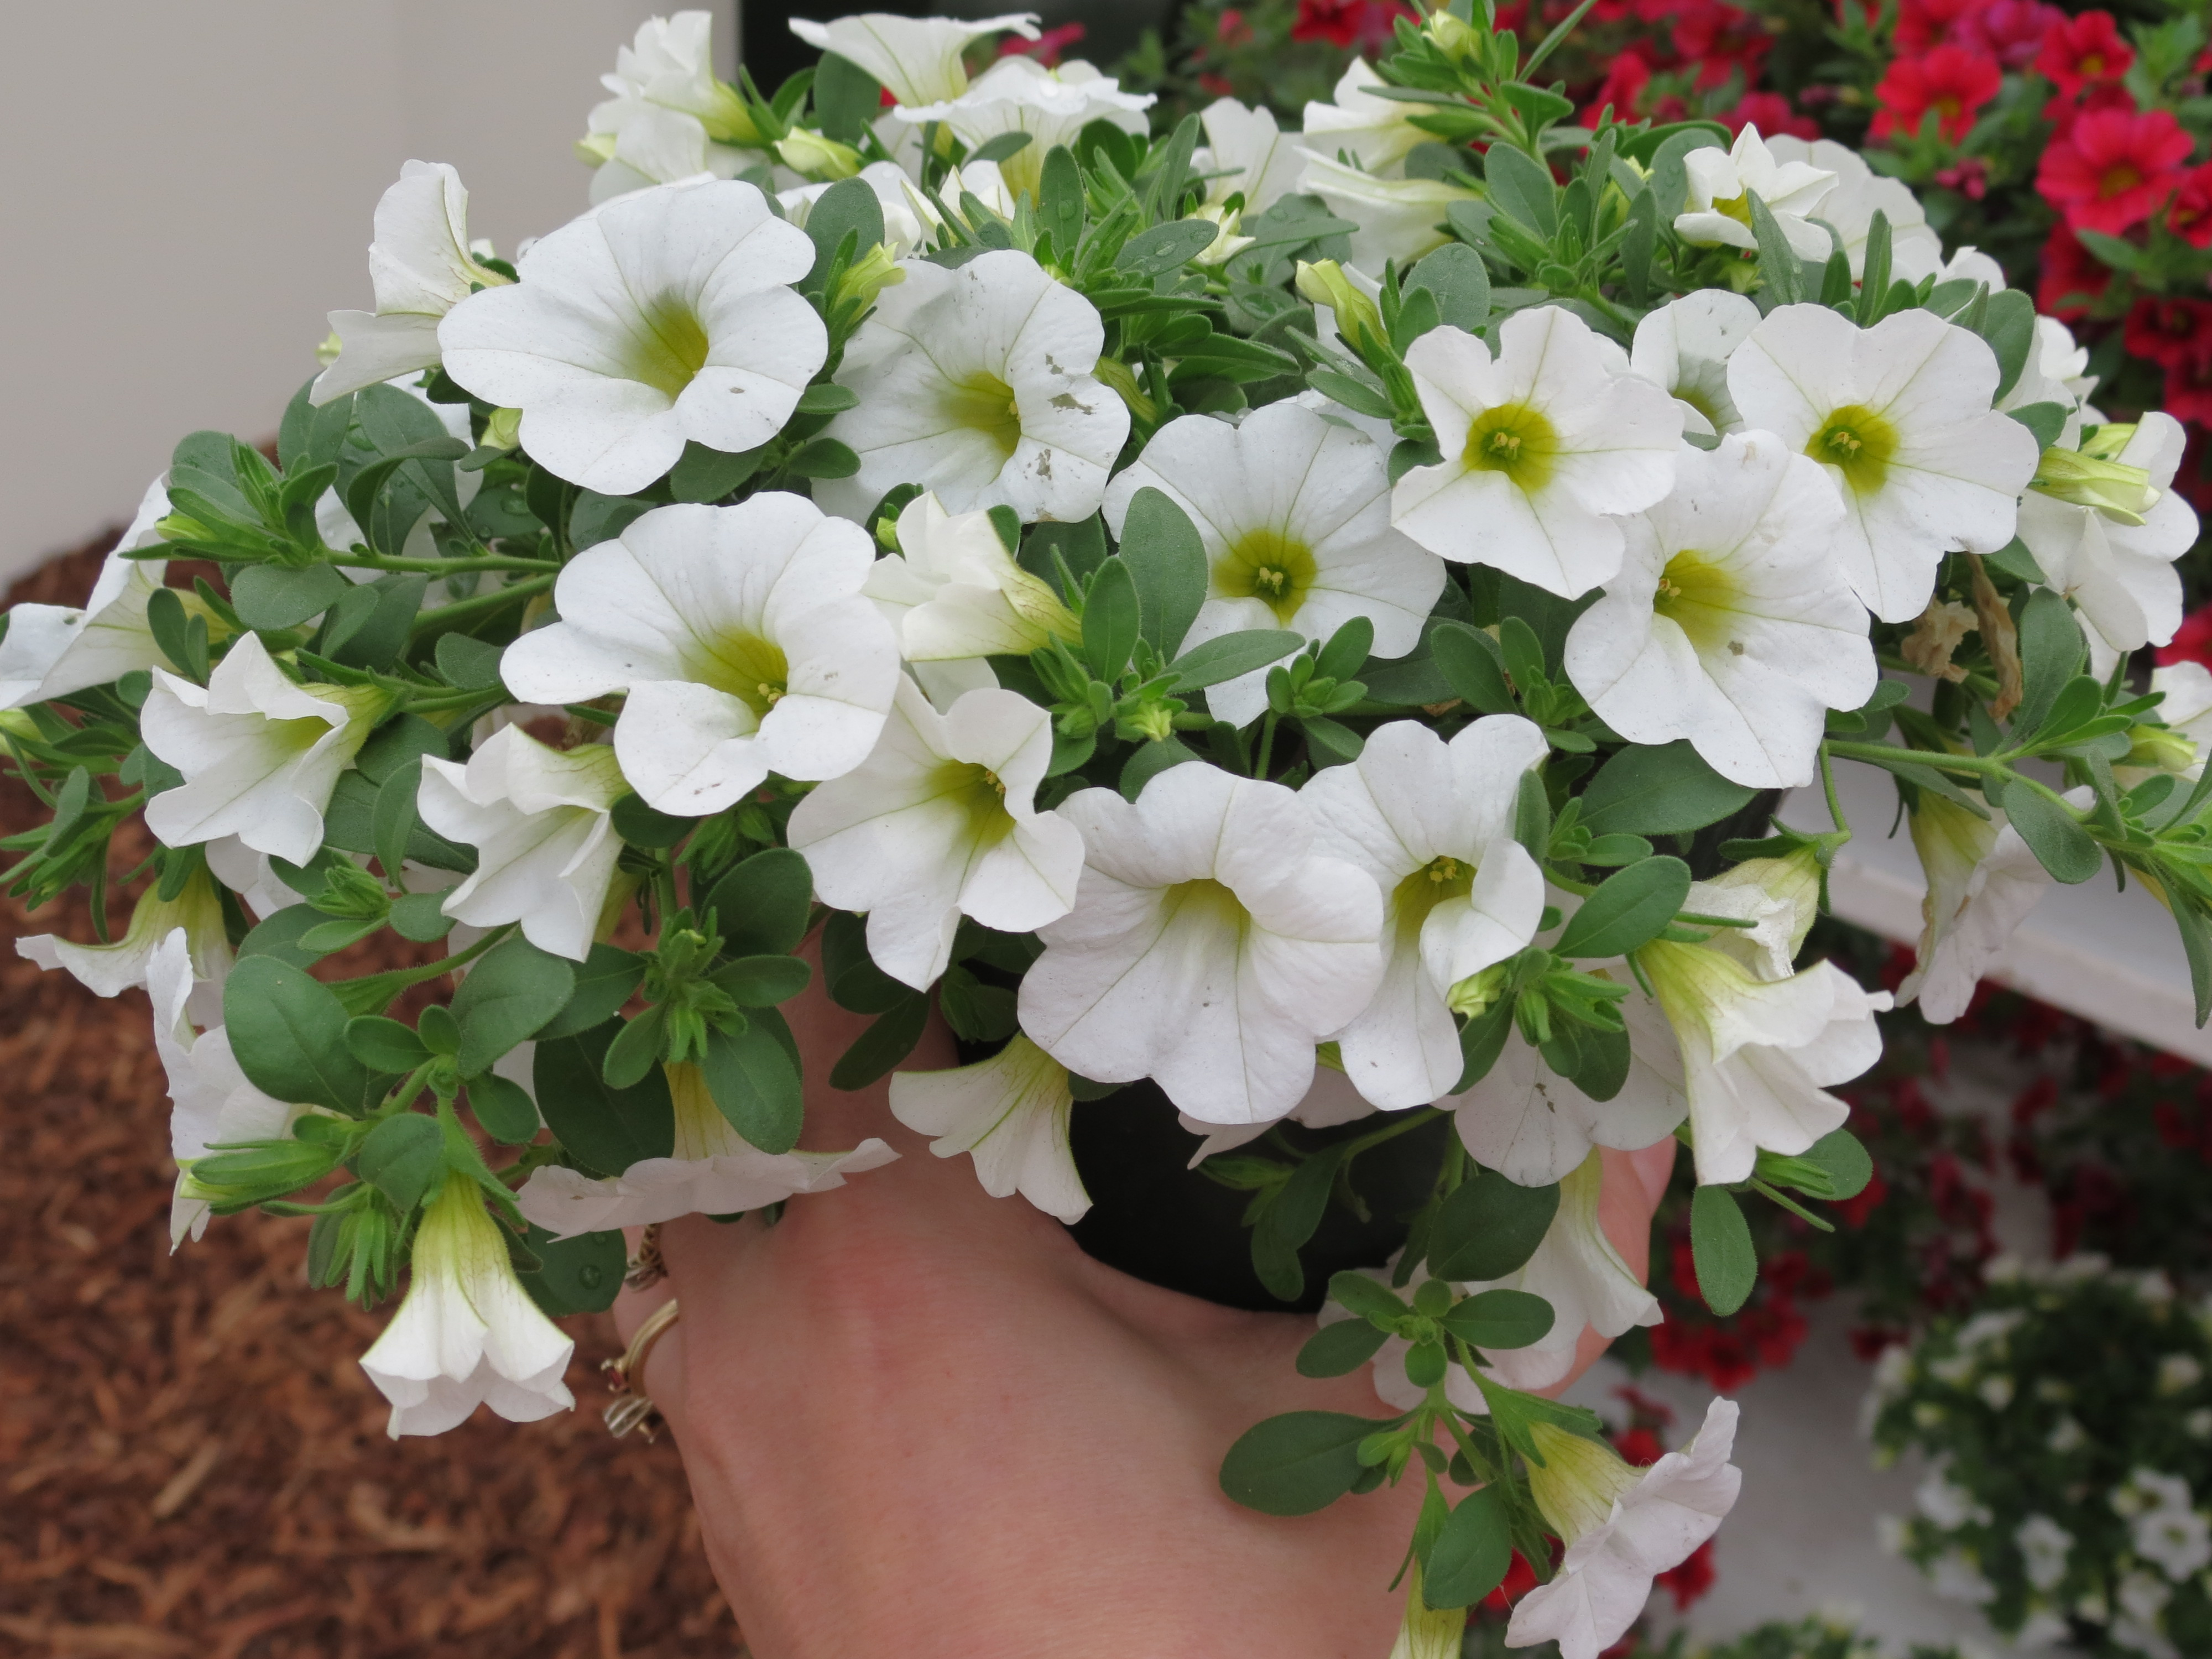 Easy Tips From Suntory Flowers For Creating Patriotic Gardens